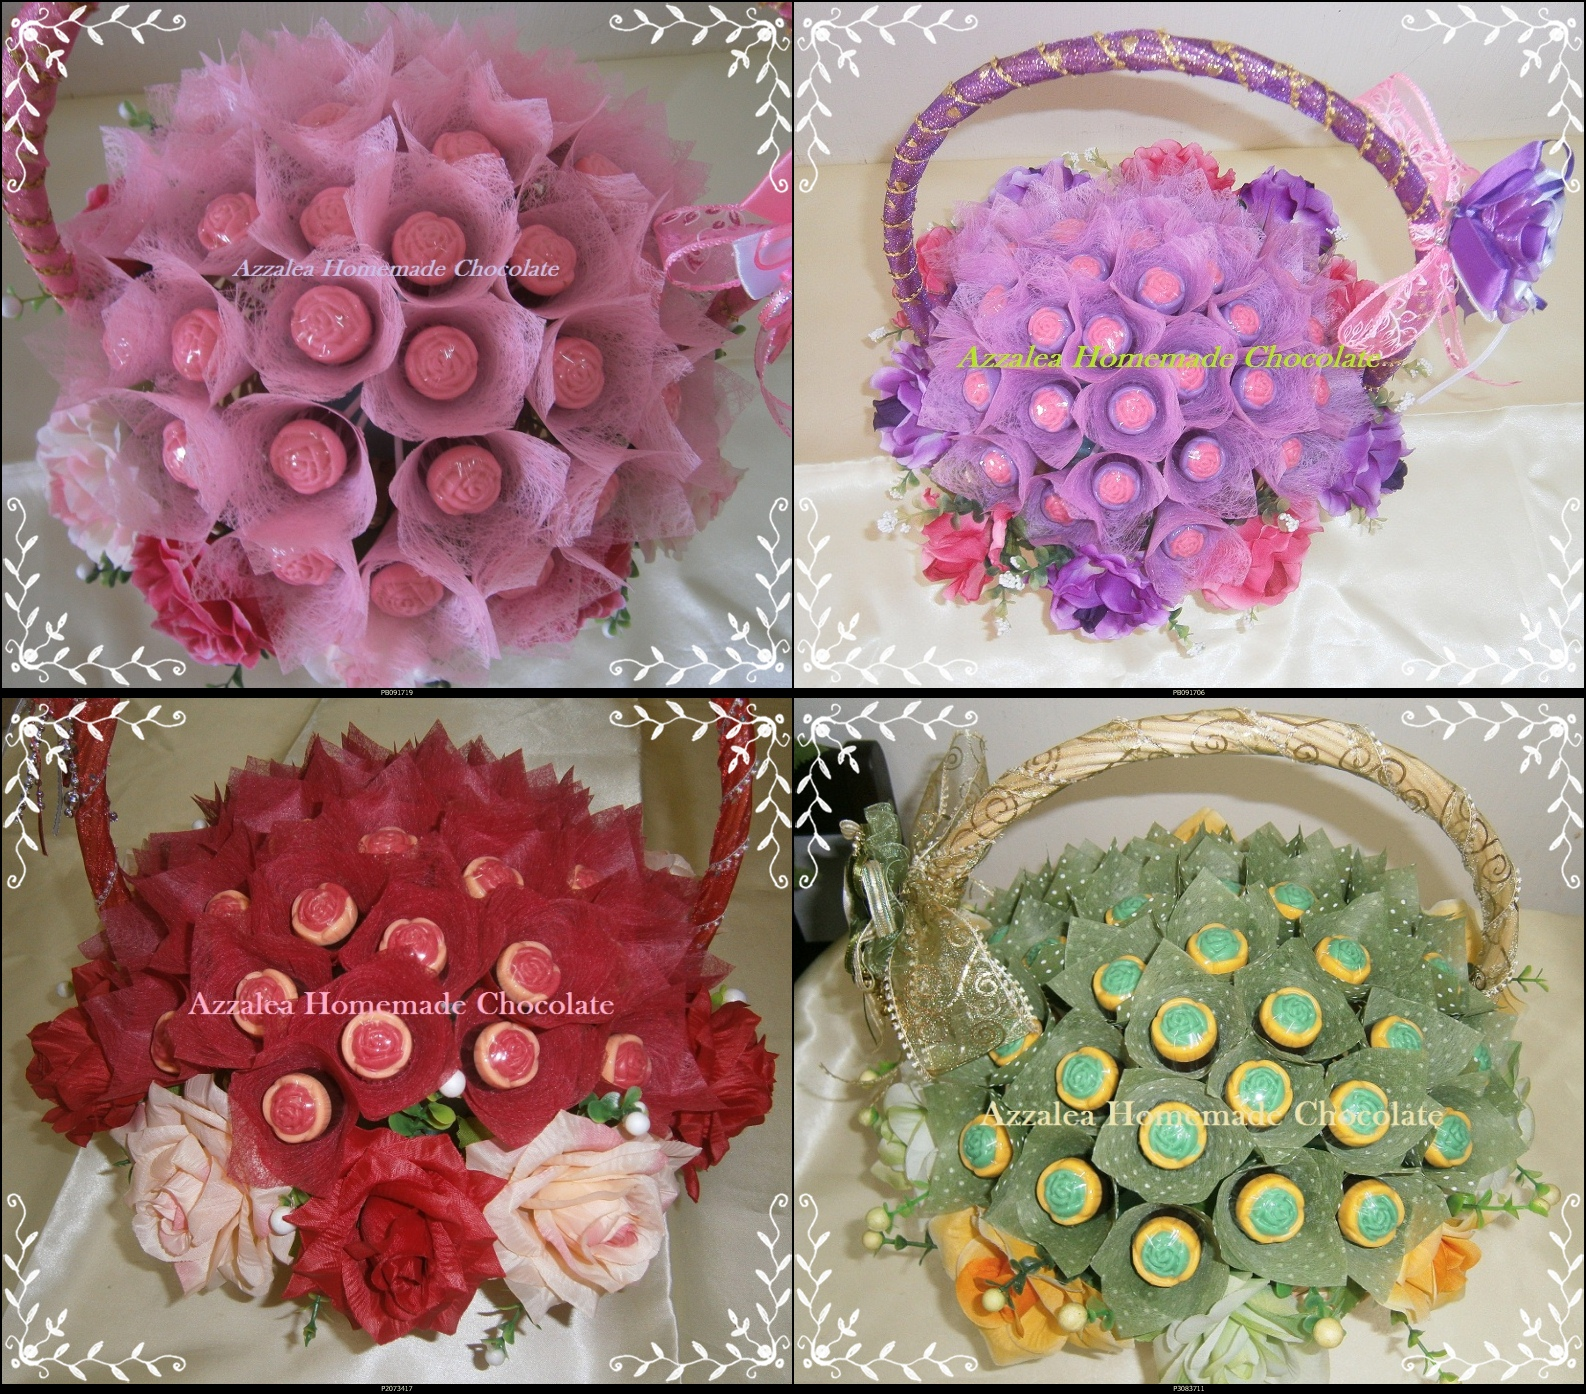 Azzalea homemade chocolate kahwin mall wedding for Idea door gift tunang